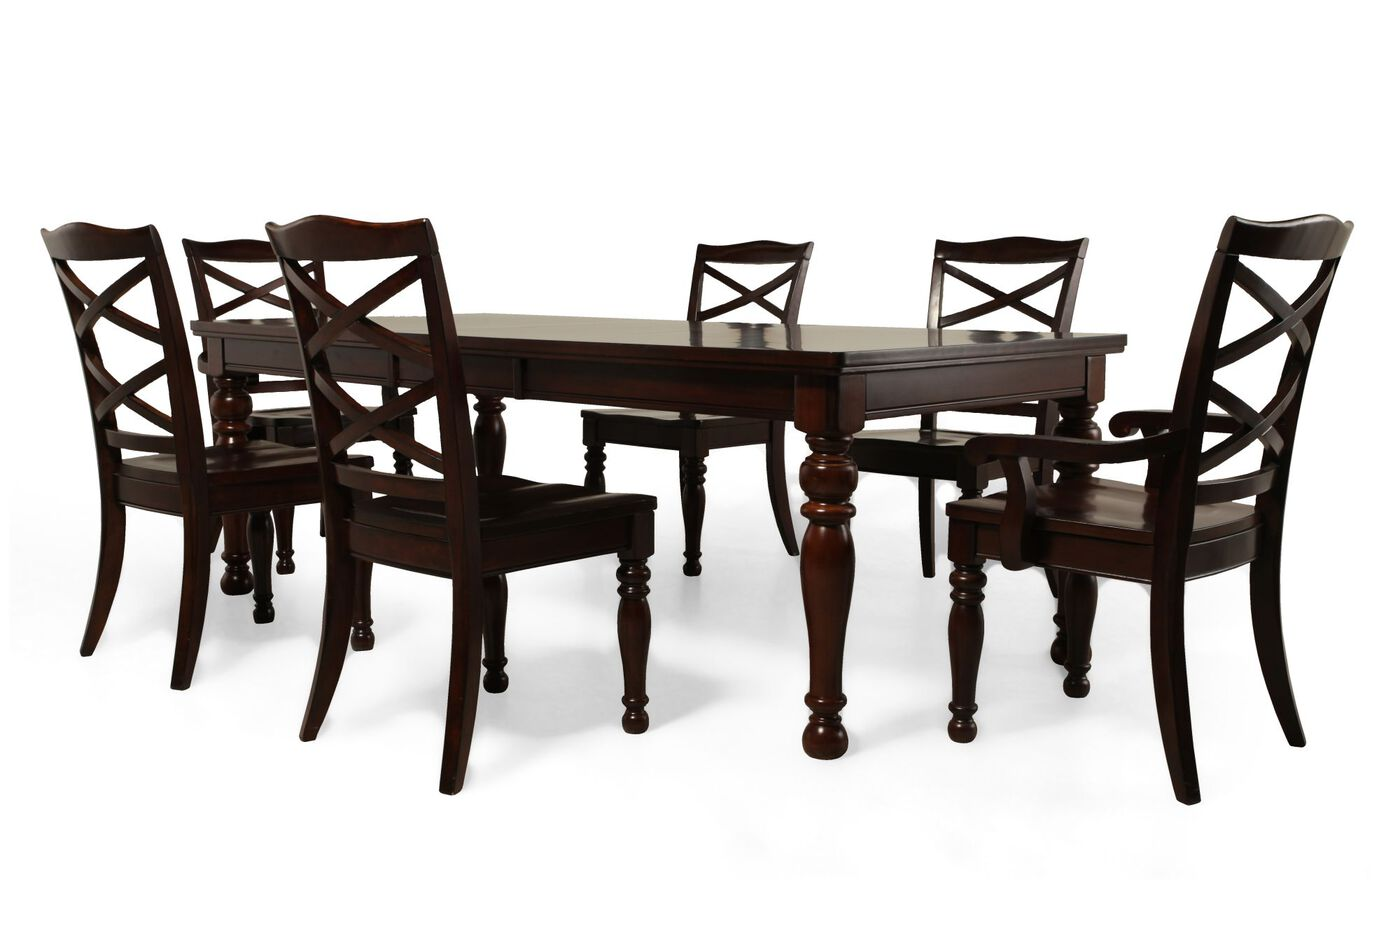 Mathis Brothers Dining Tables Mathis Brothers Dining  : ASH D6975E0477PC from amlibgroup.com size 1400 x 933 jpeg 92kB